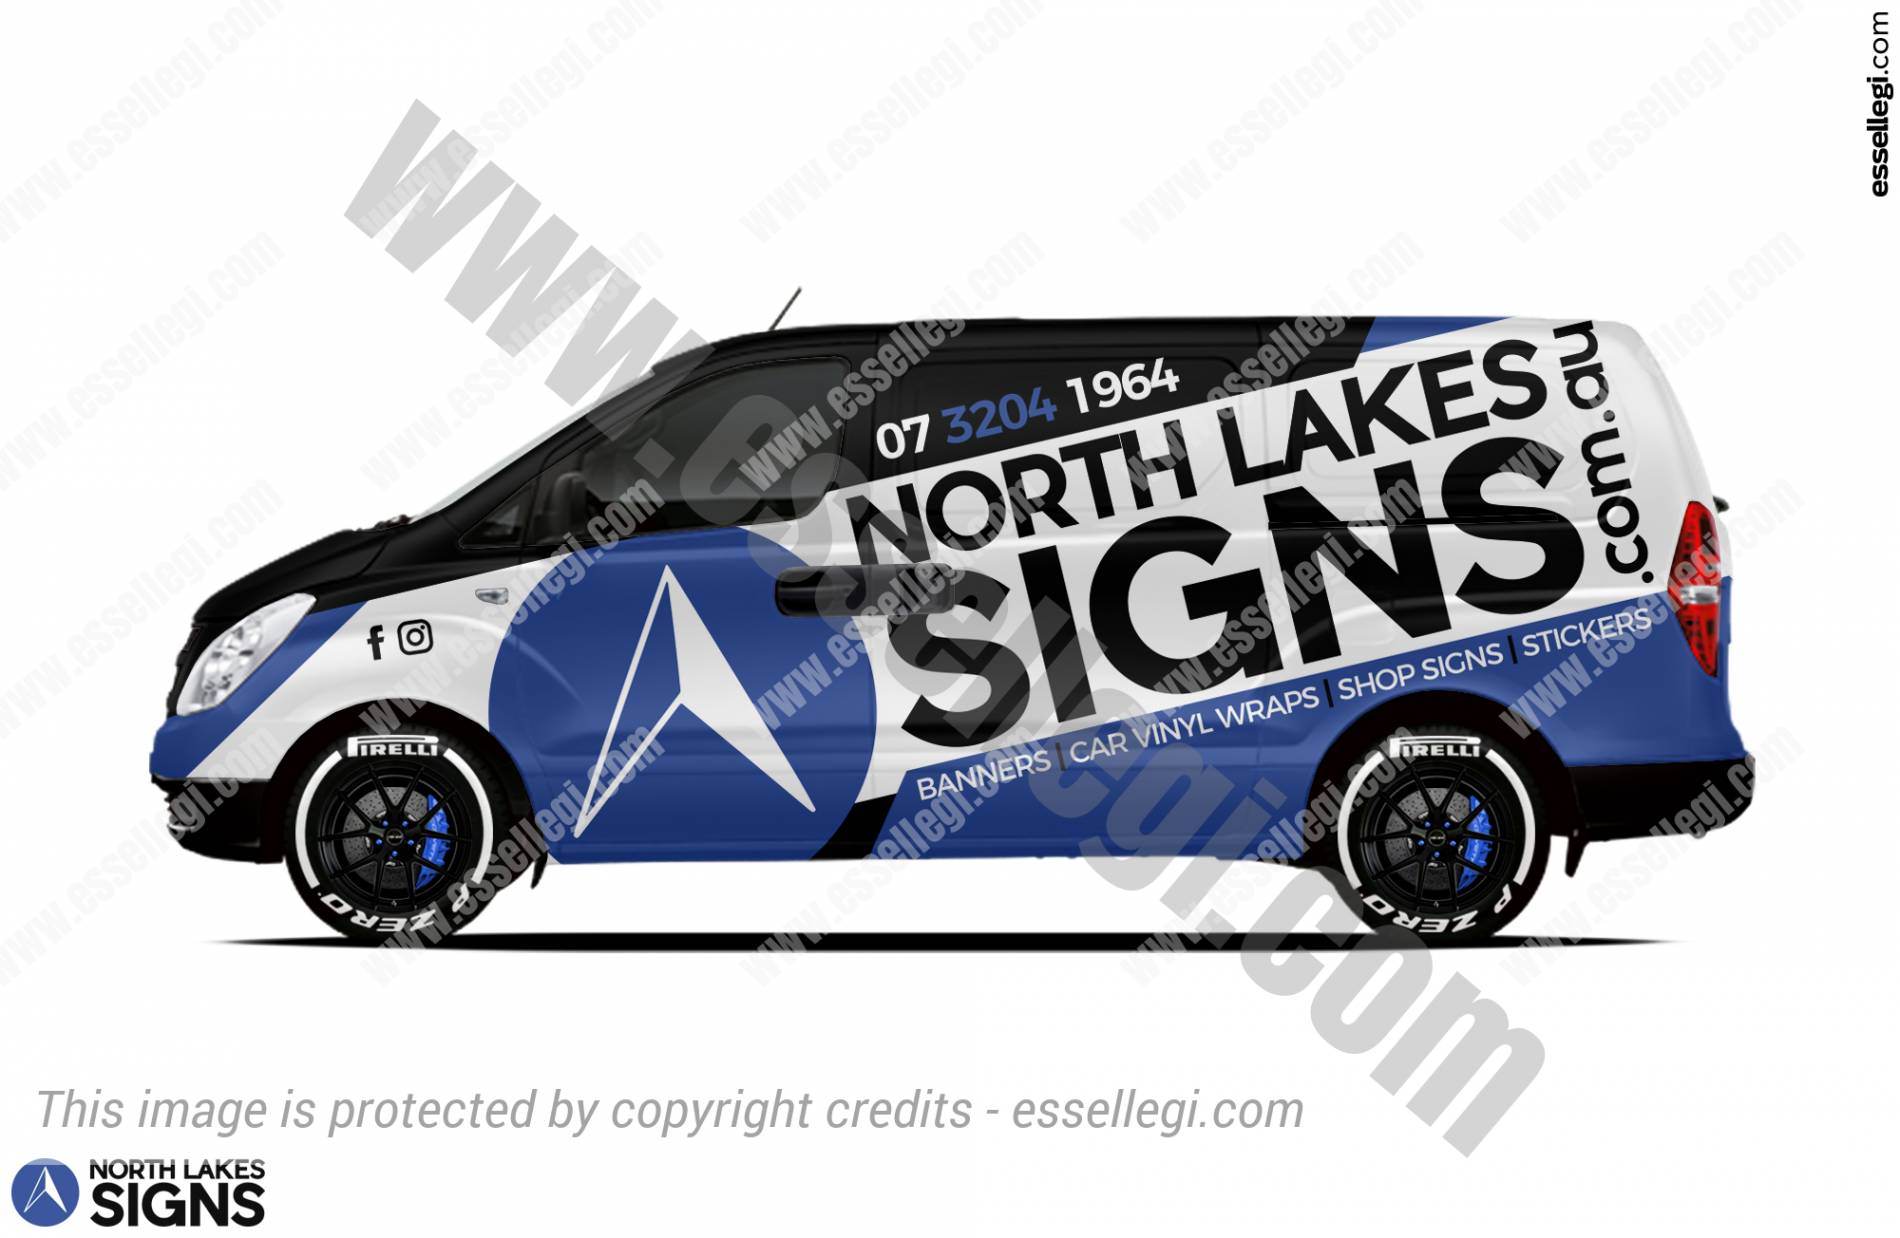 NORTH LAKES SIGNS | VAN WRAP DESIGN 🇦🇺